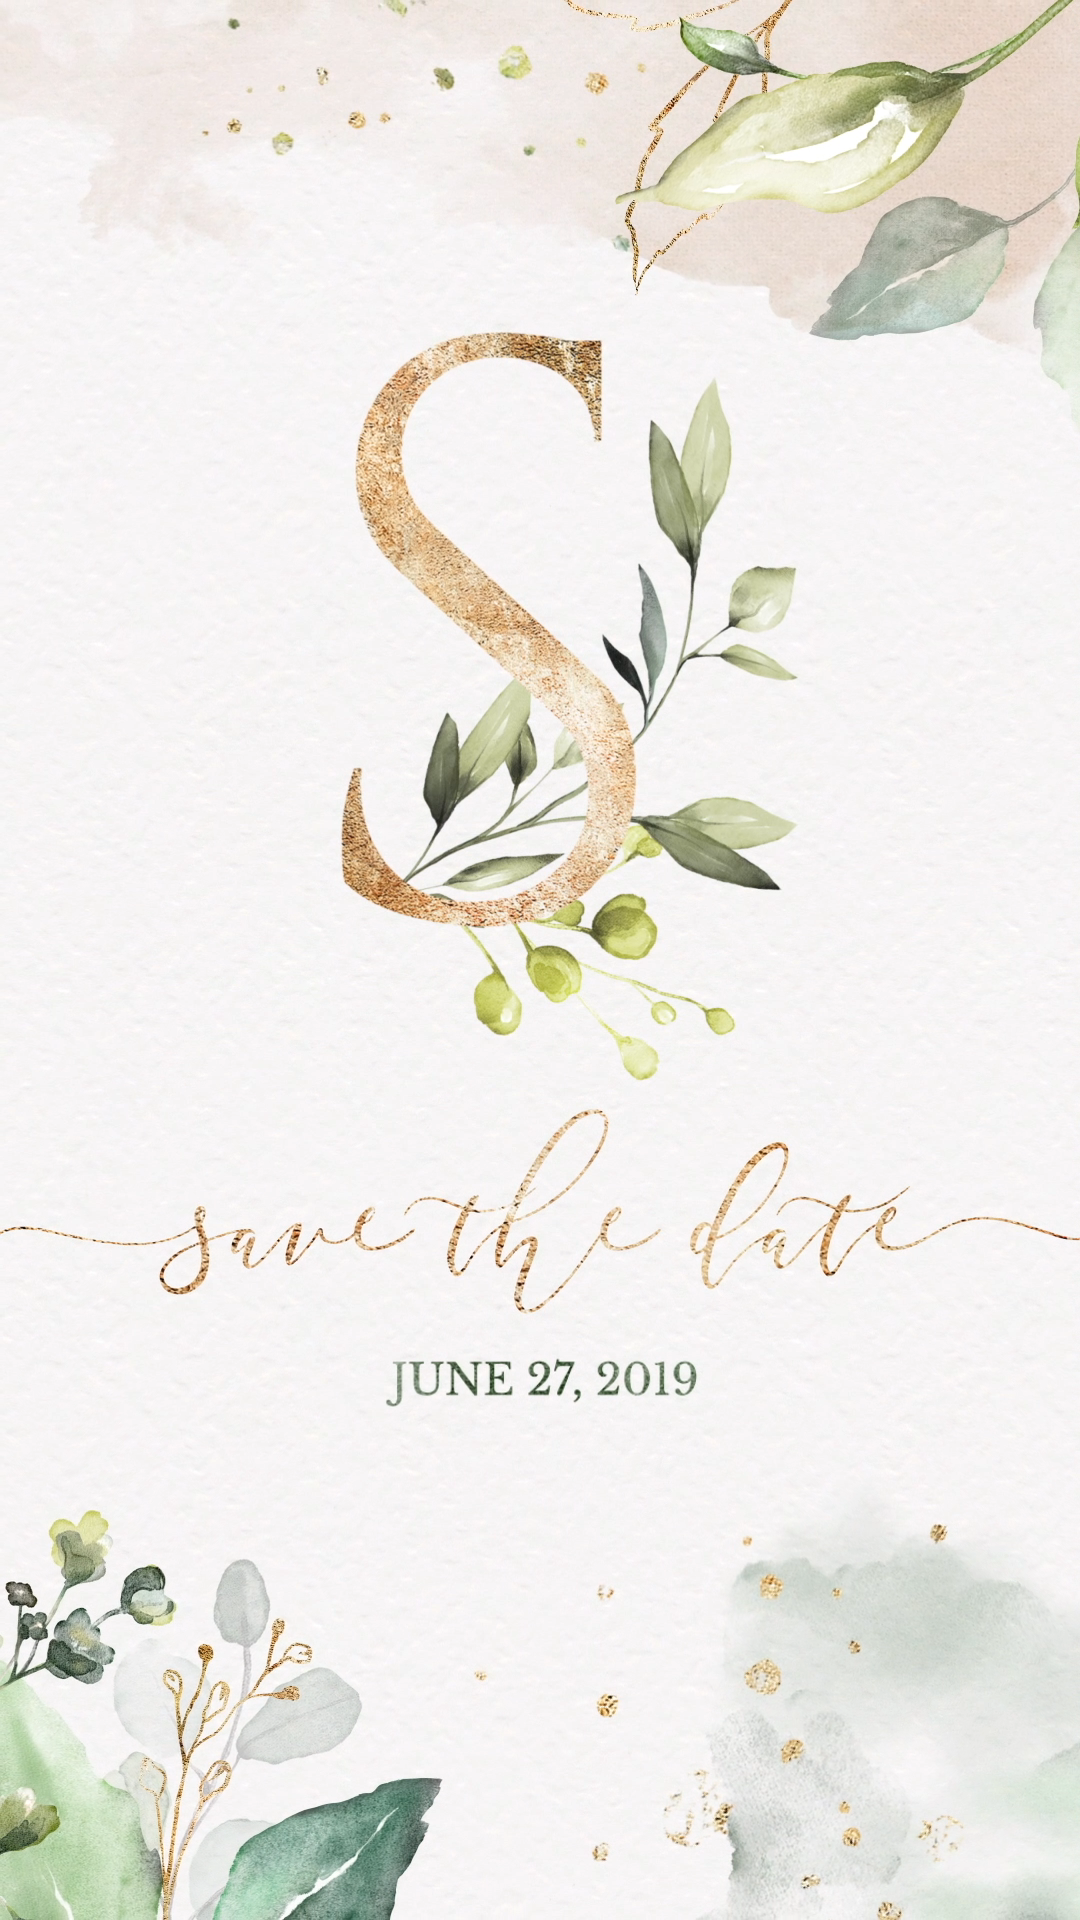 Unique Watercolor Greenery Wedding Invitation Video. This Elegant save the date is perfect to invite your guests to your rustic wedding with an email Save the Date. Pin This + Click Through to See more digital save the date! #weddinginvites #greenerywedding #rusticweddinginvitations #Rusticwedding #countrywedding